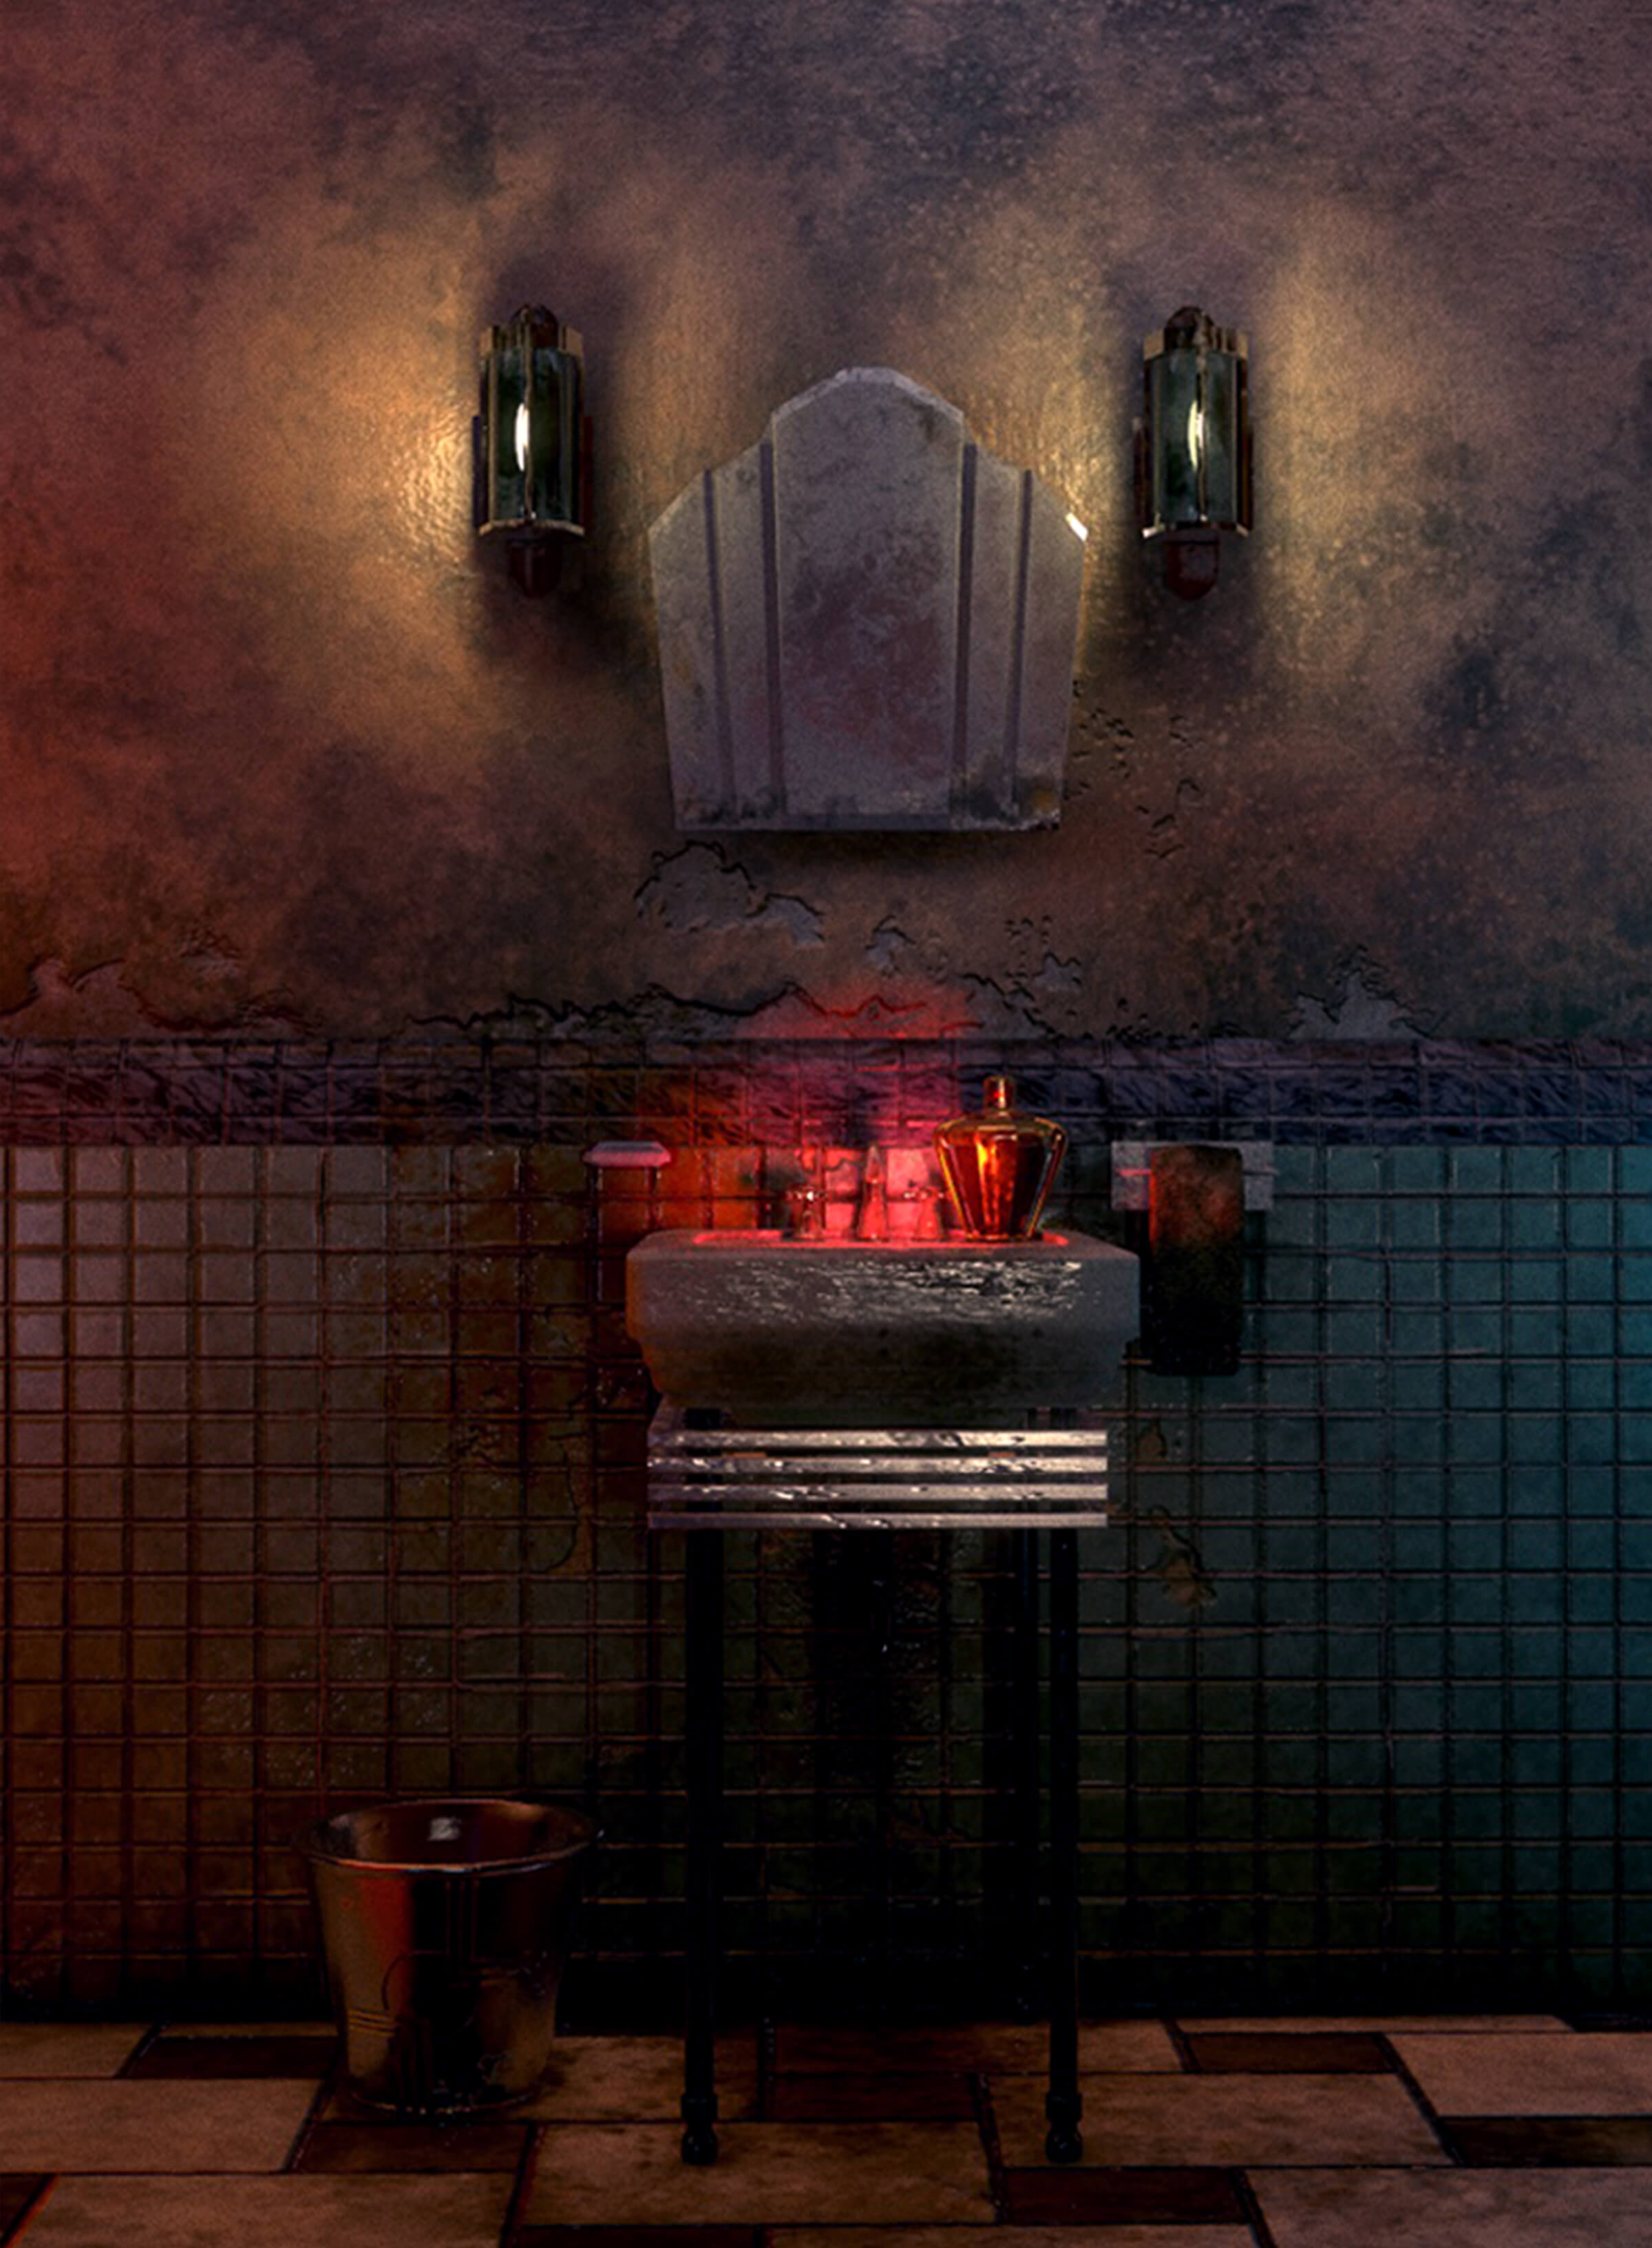 computer-generated 3D environment painting of a pedestal sink and trash can in an old dark bathroom